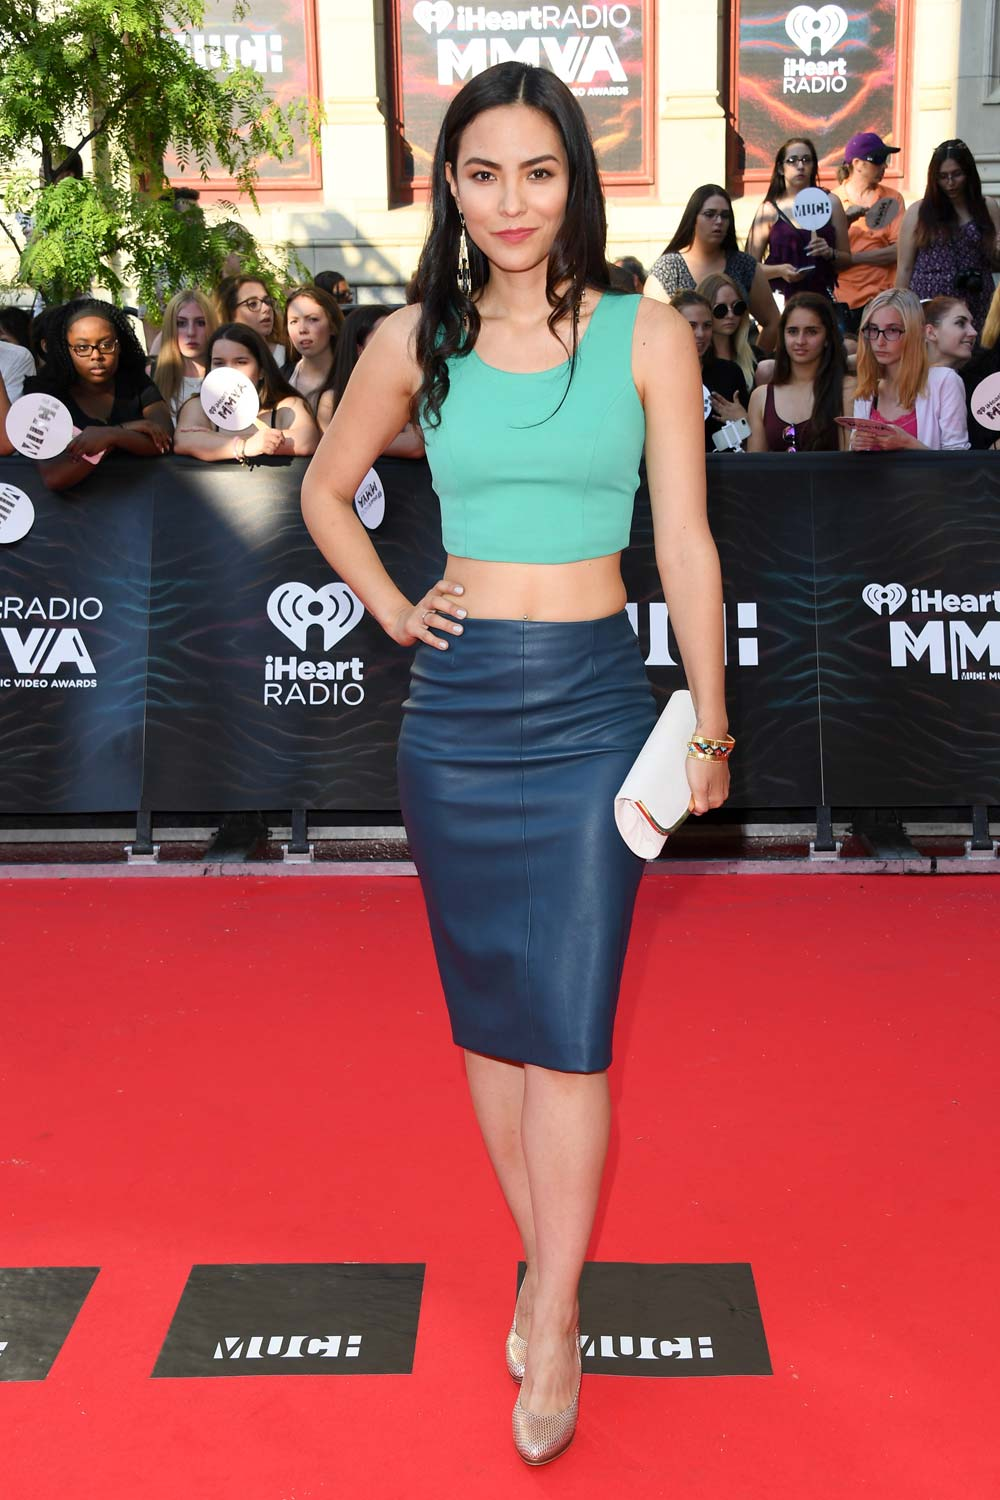 Jessica Matten arrives at the 2016 iHeartRADIO MuchMusic Video Awards